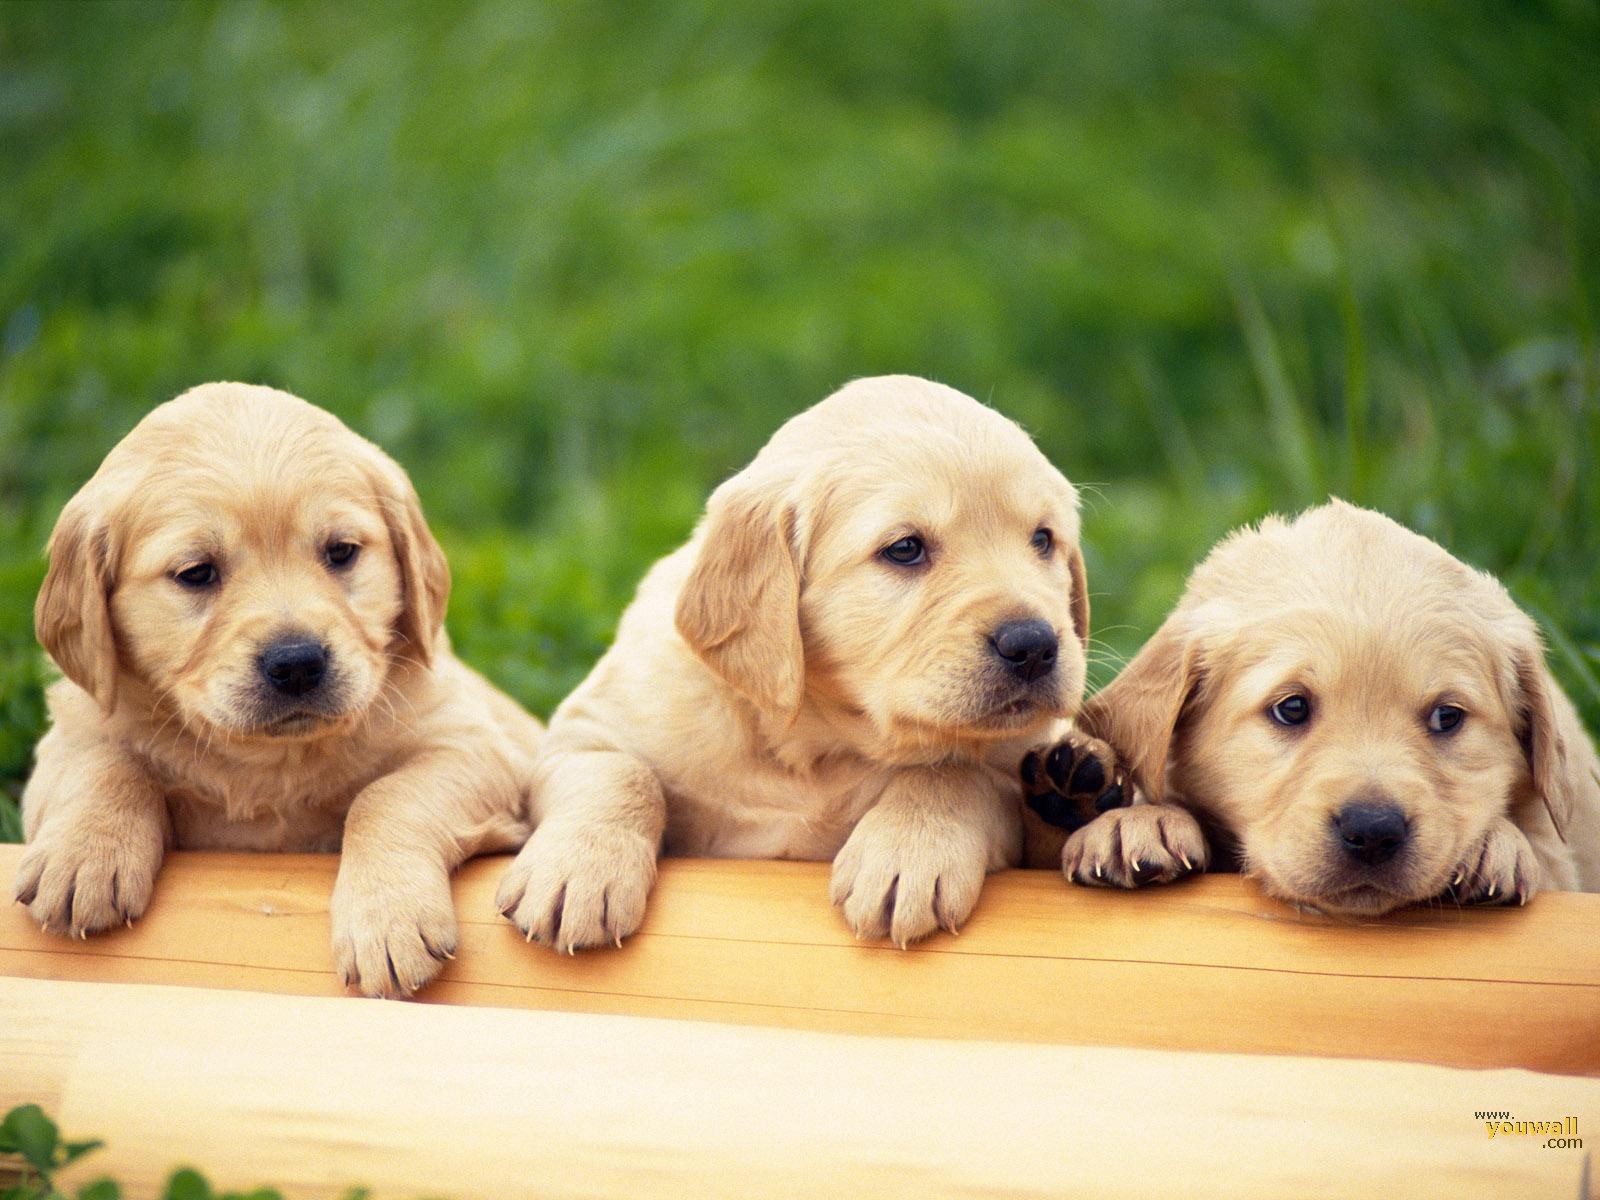 cute dogs wallpaper | 1600x1200 | #58313